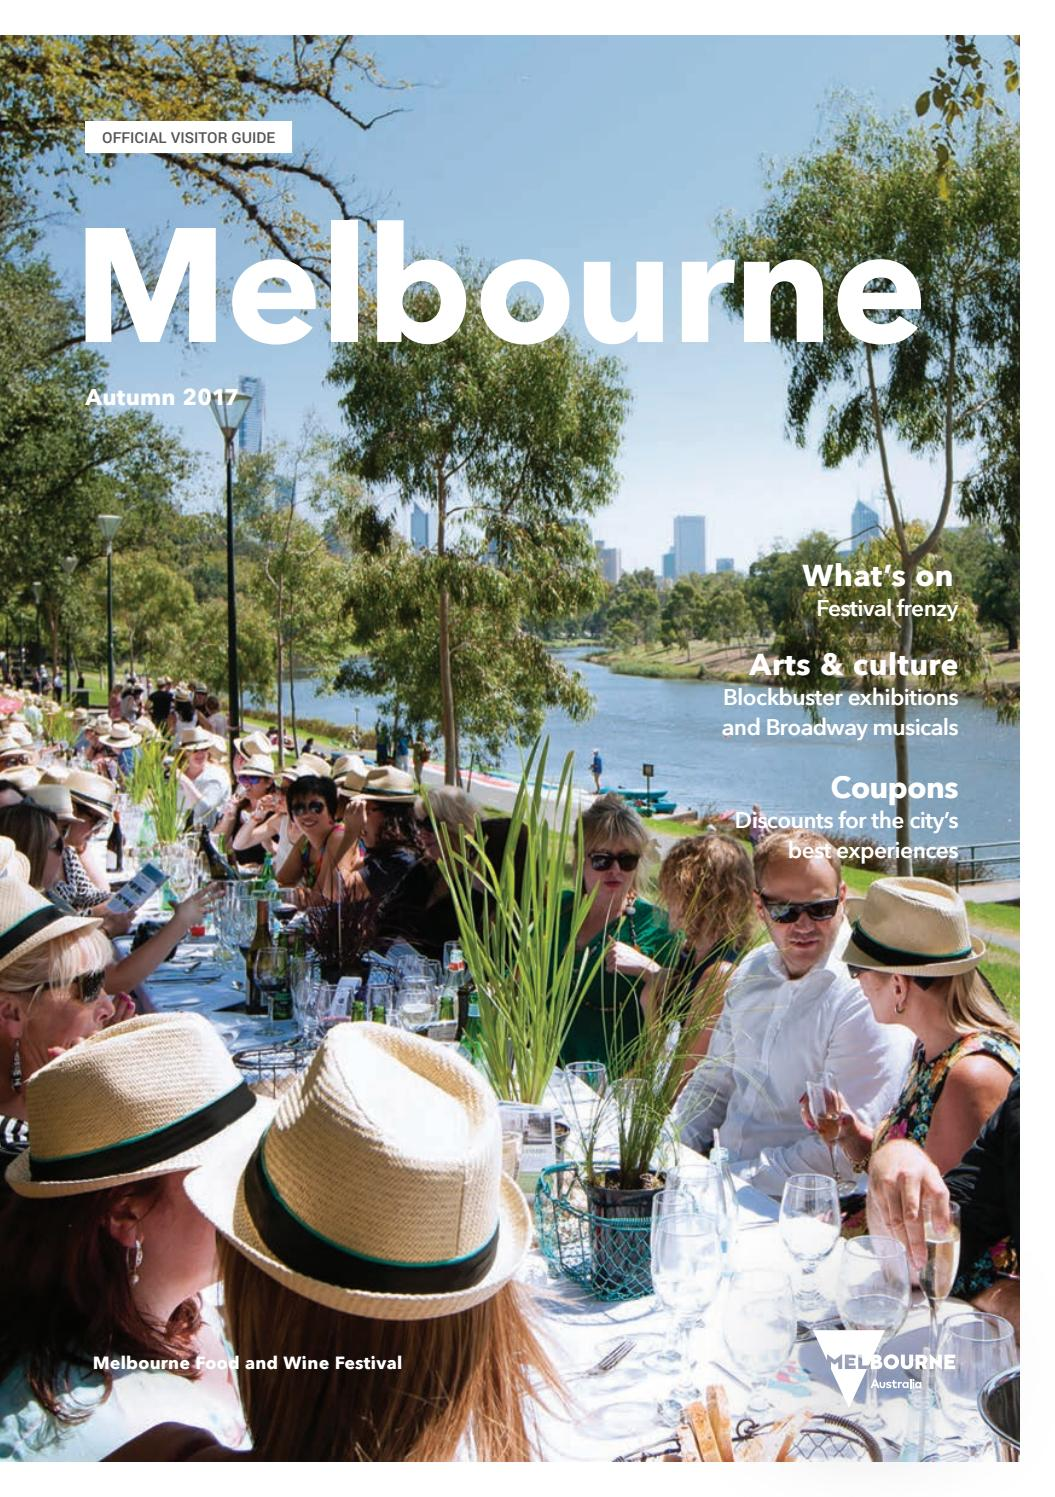 Melbourne official visitors guide autumn 2017 by destination melbourne official visitors guide autumn 2017 by destination melbourne issuu fandeluxe Images